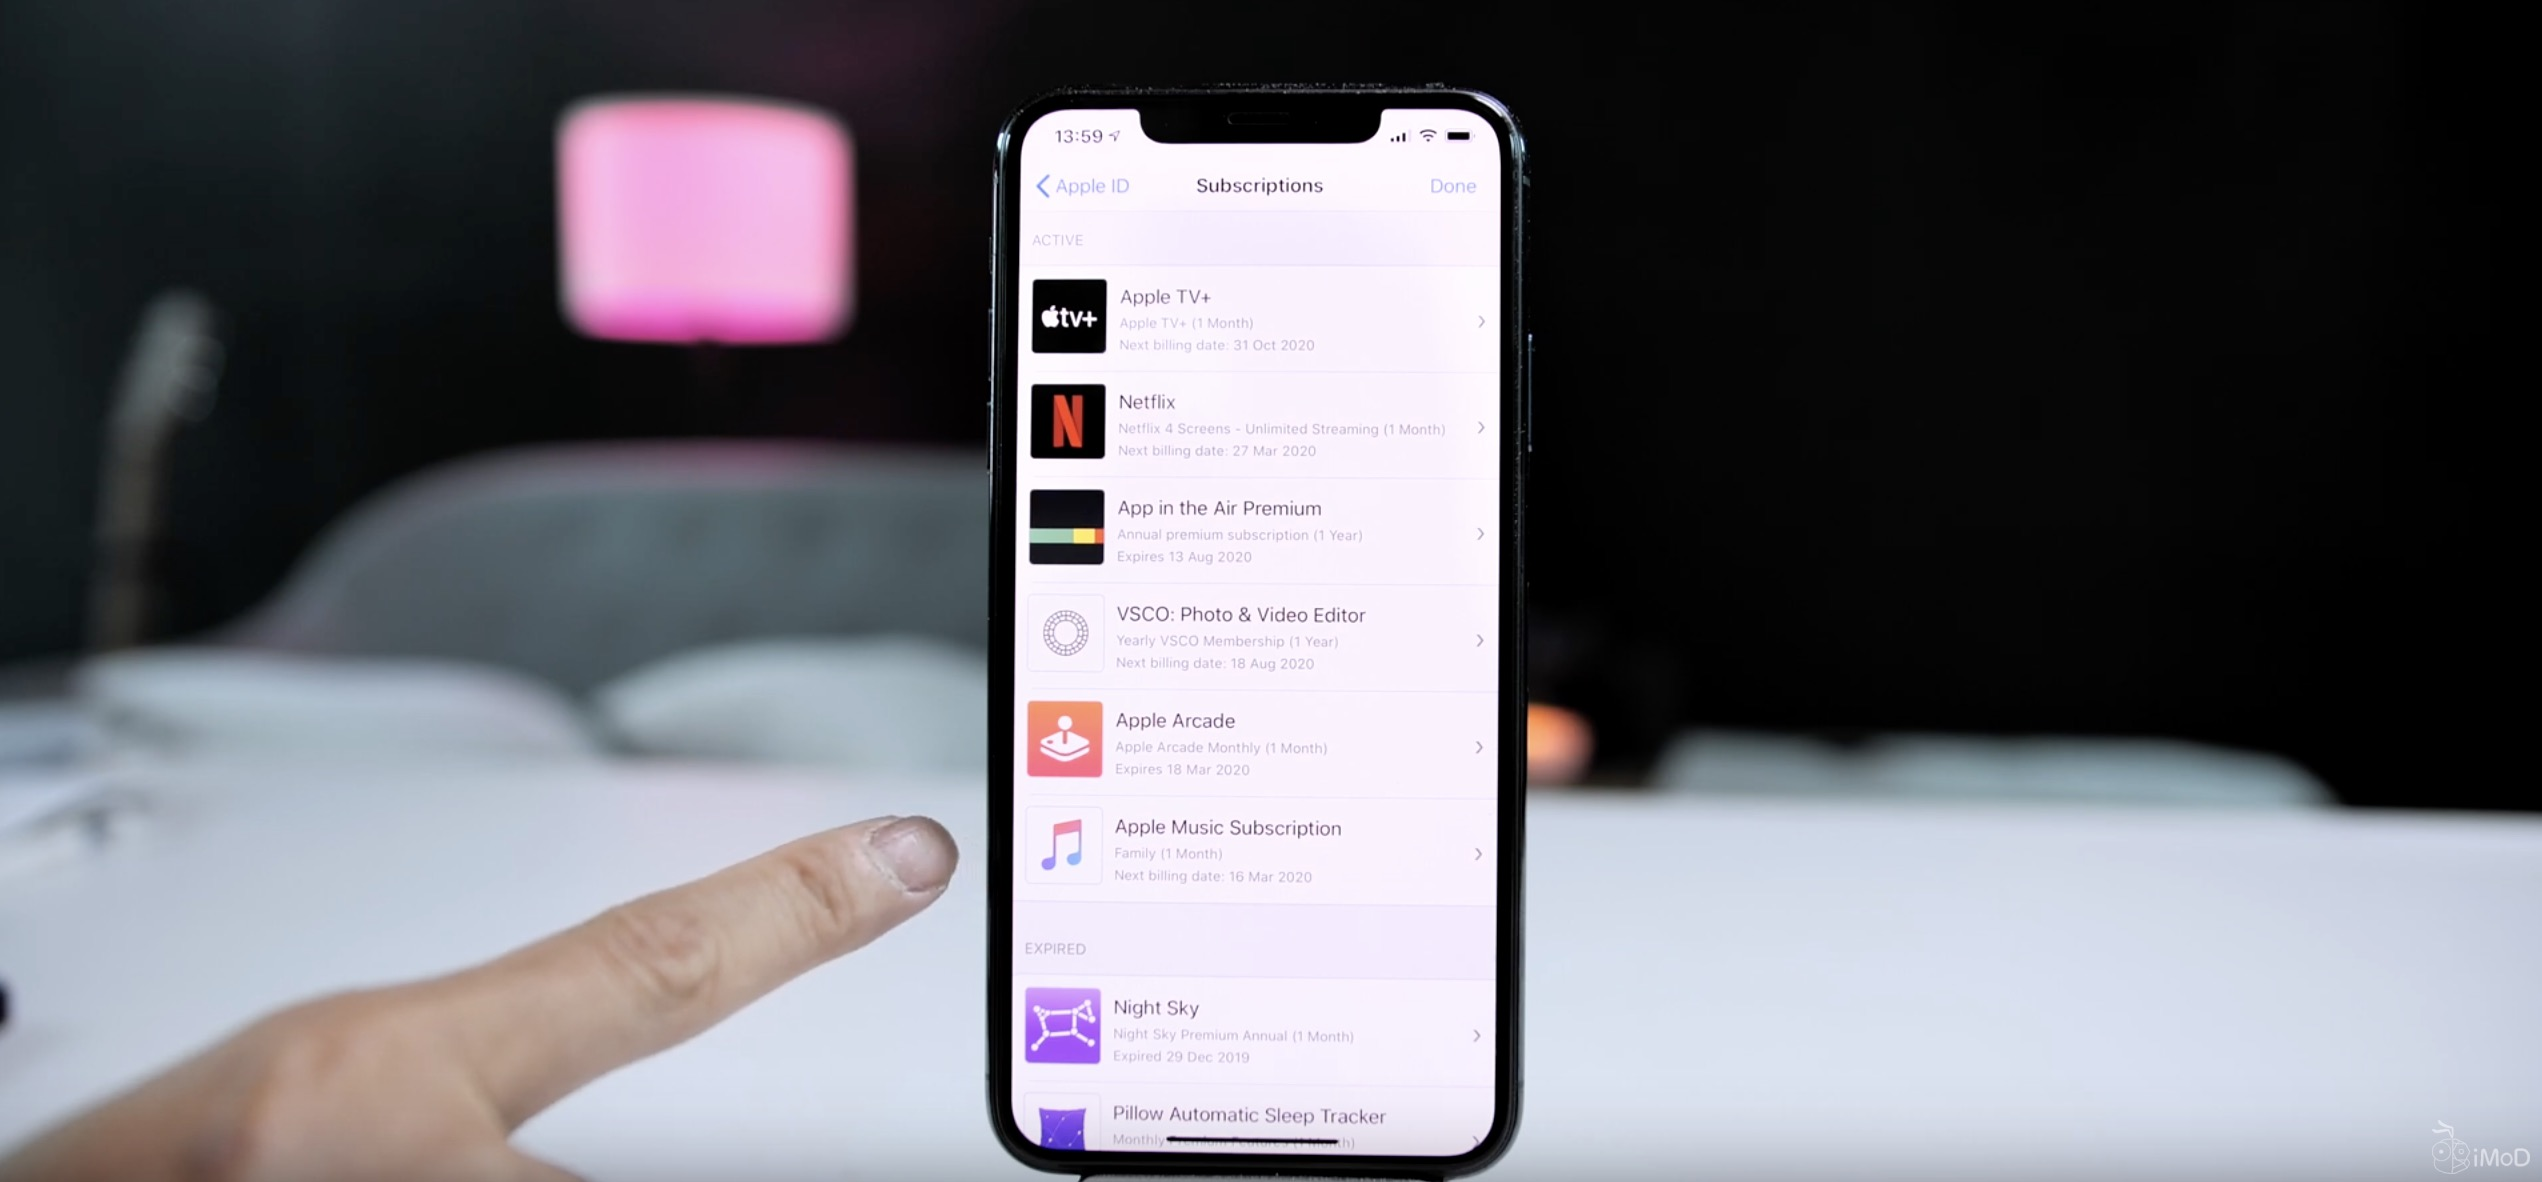 Cancel Apple Mussic Subscrioption 2